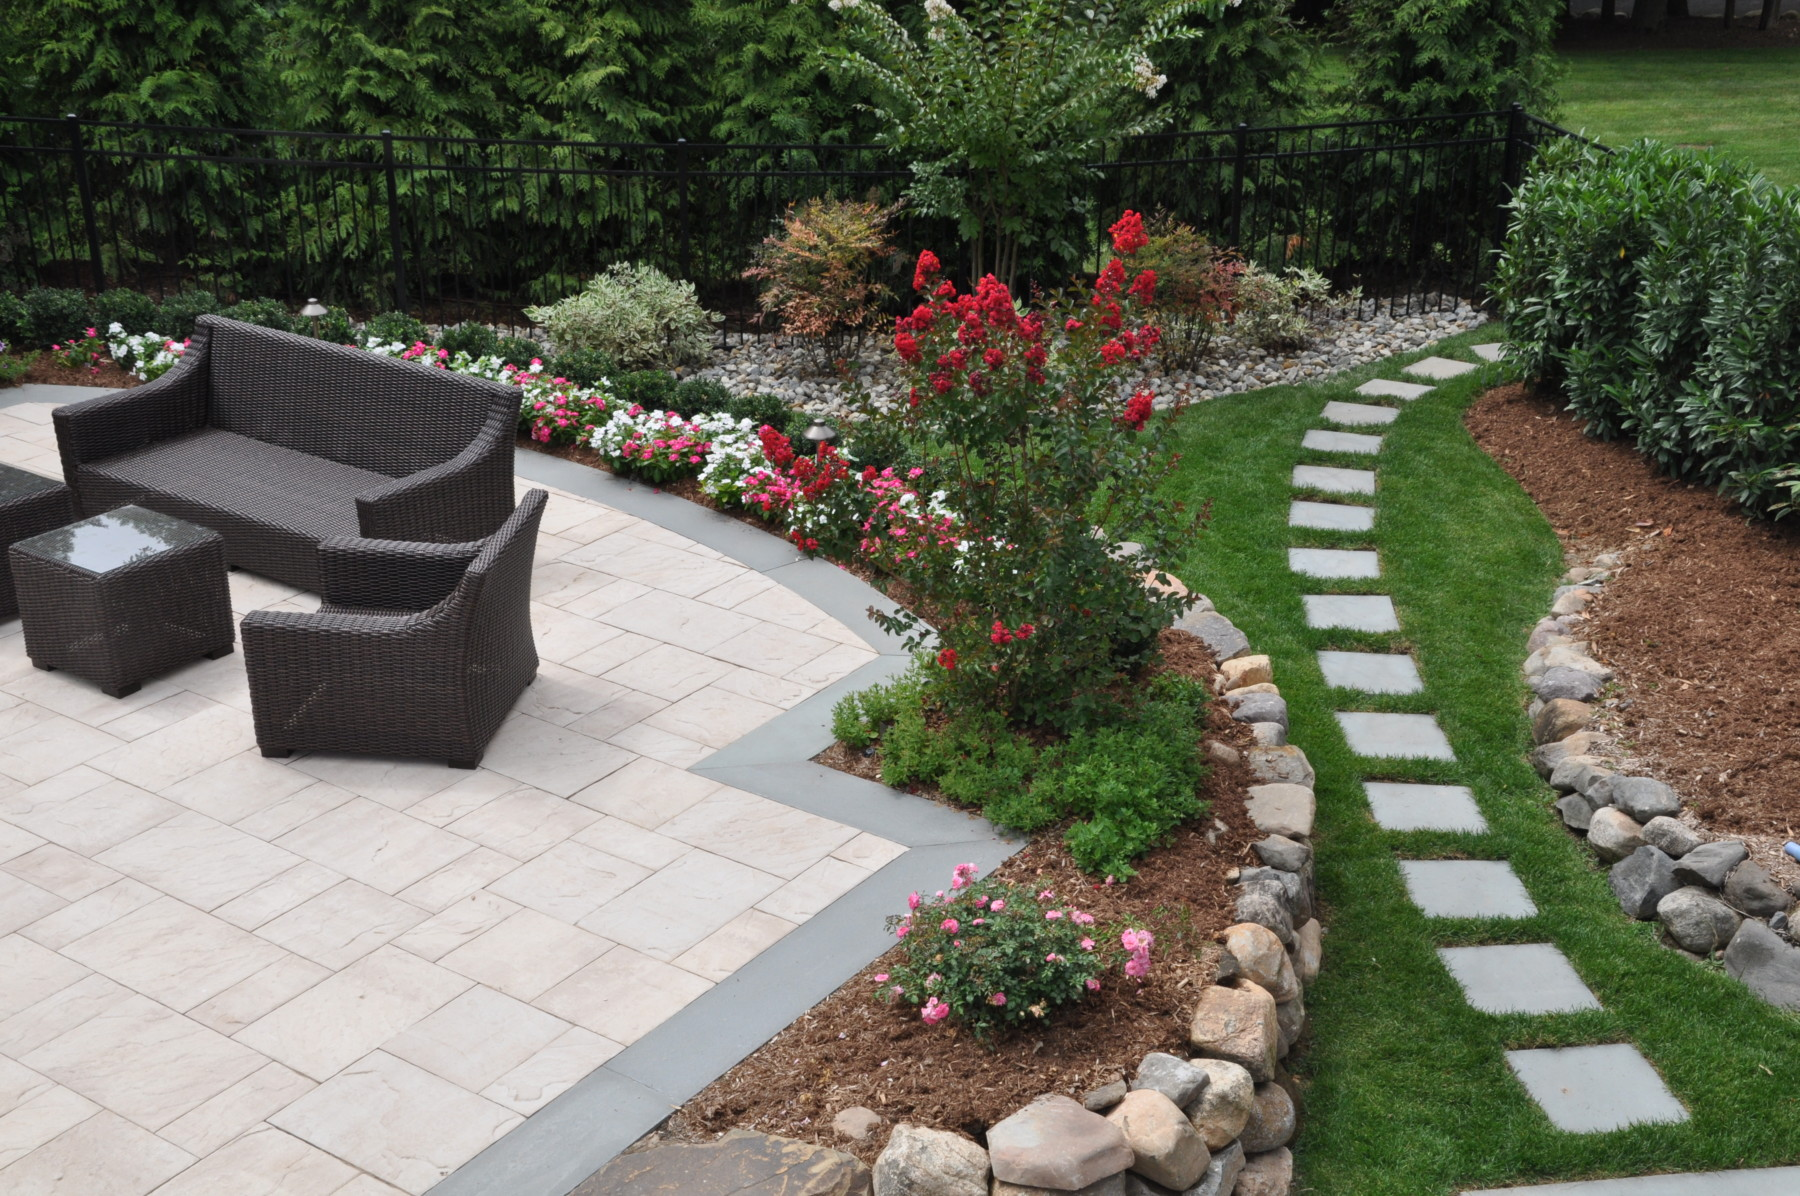 15 Beautiful Small Backyard Landscaping Ideas - Borst ... on Small Backyard Landscaping  id=85820